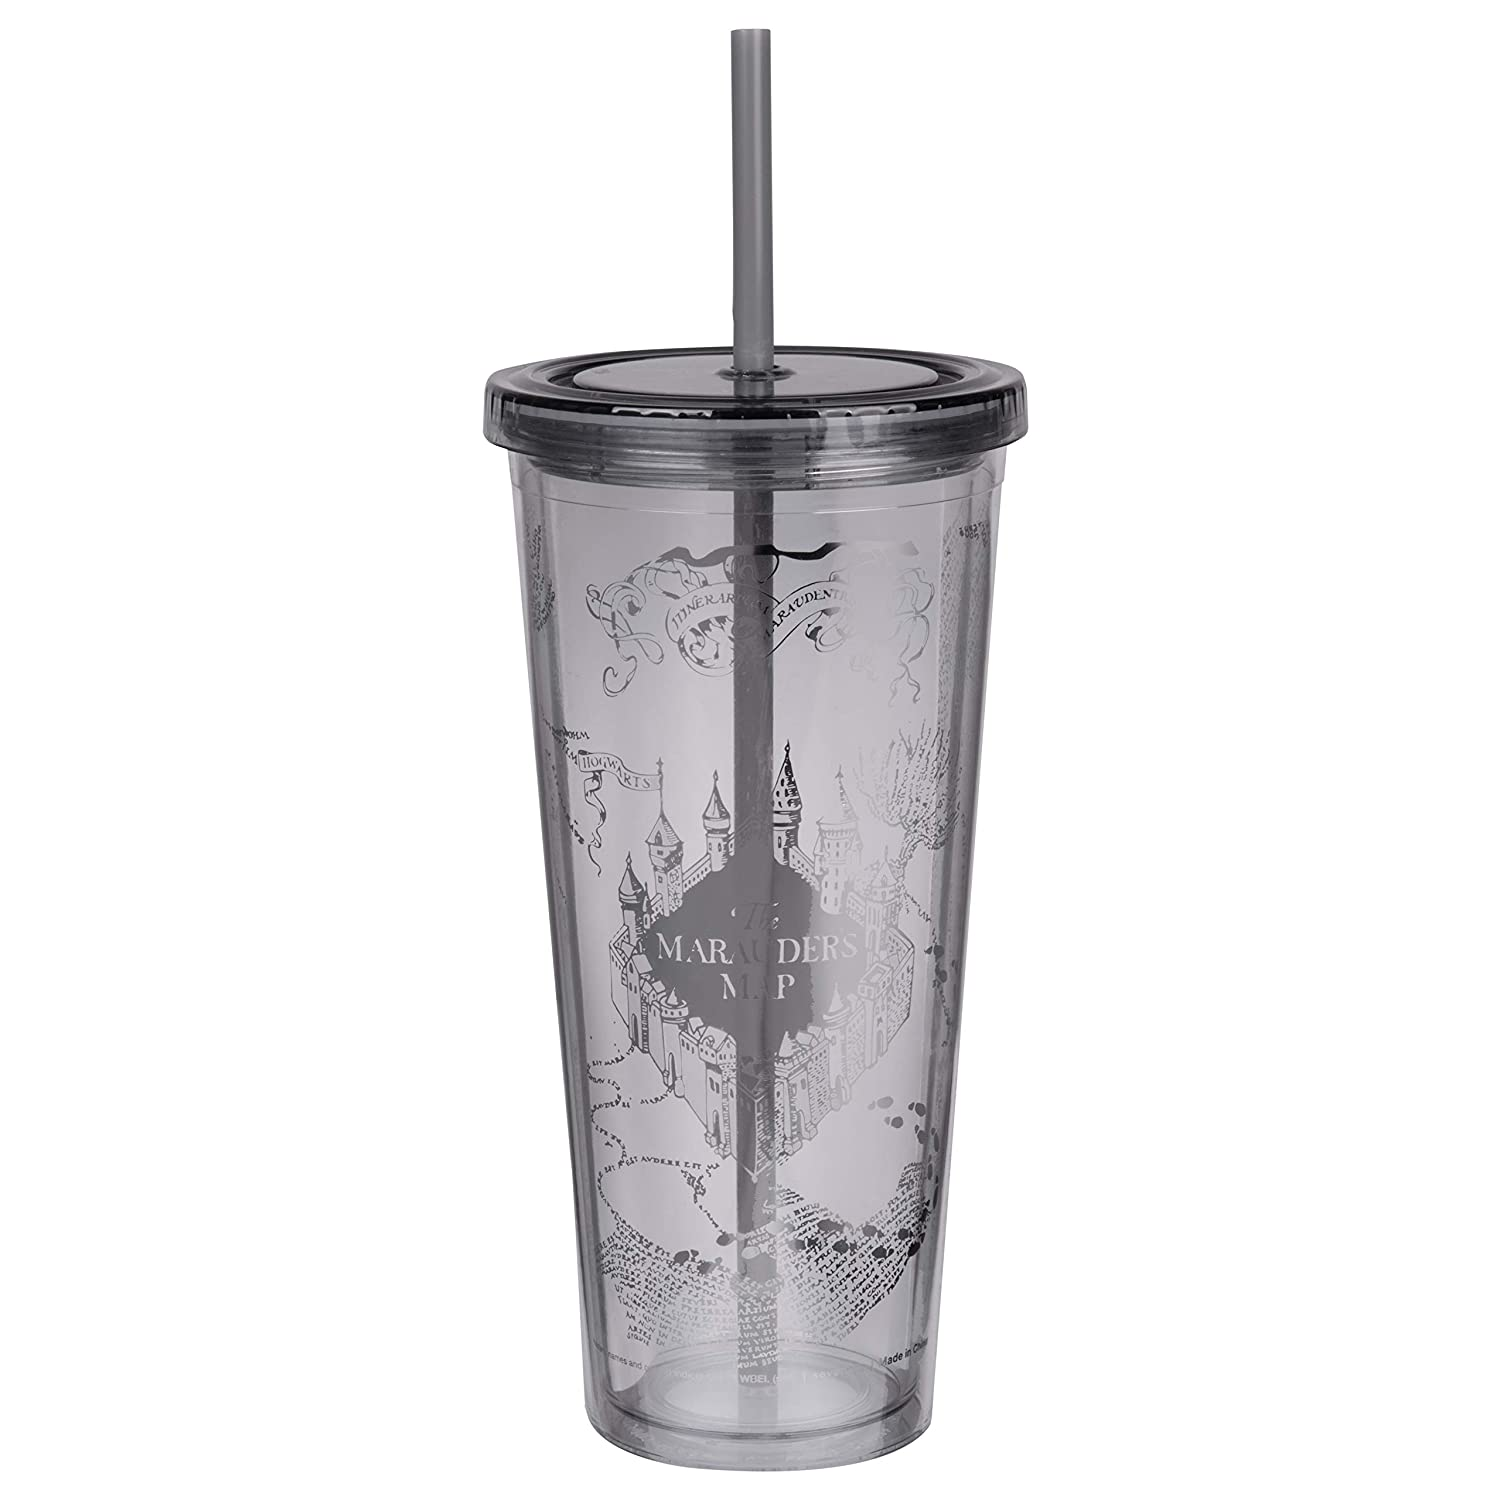 Acrylic Tumbler with Silver Design Harry Potter Marauders Map Travel Cup with Straw I Solemnly Swear That I Am Up to No Good 22 oz